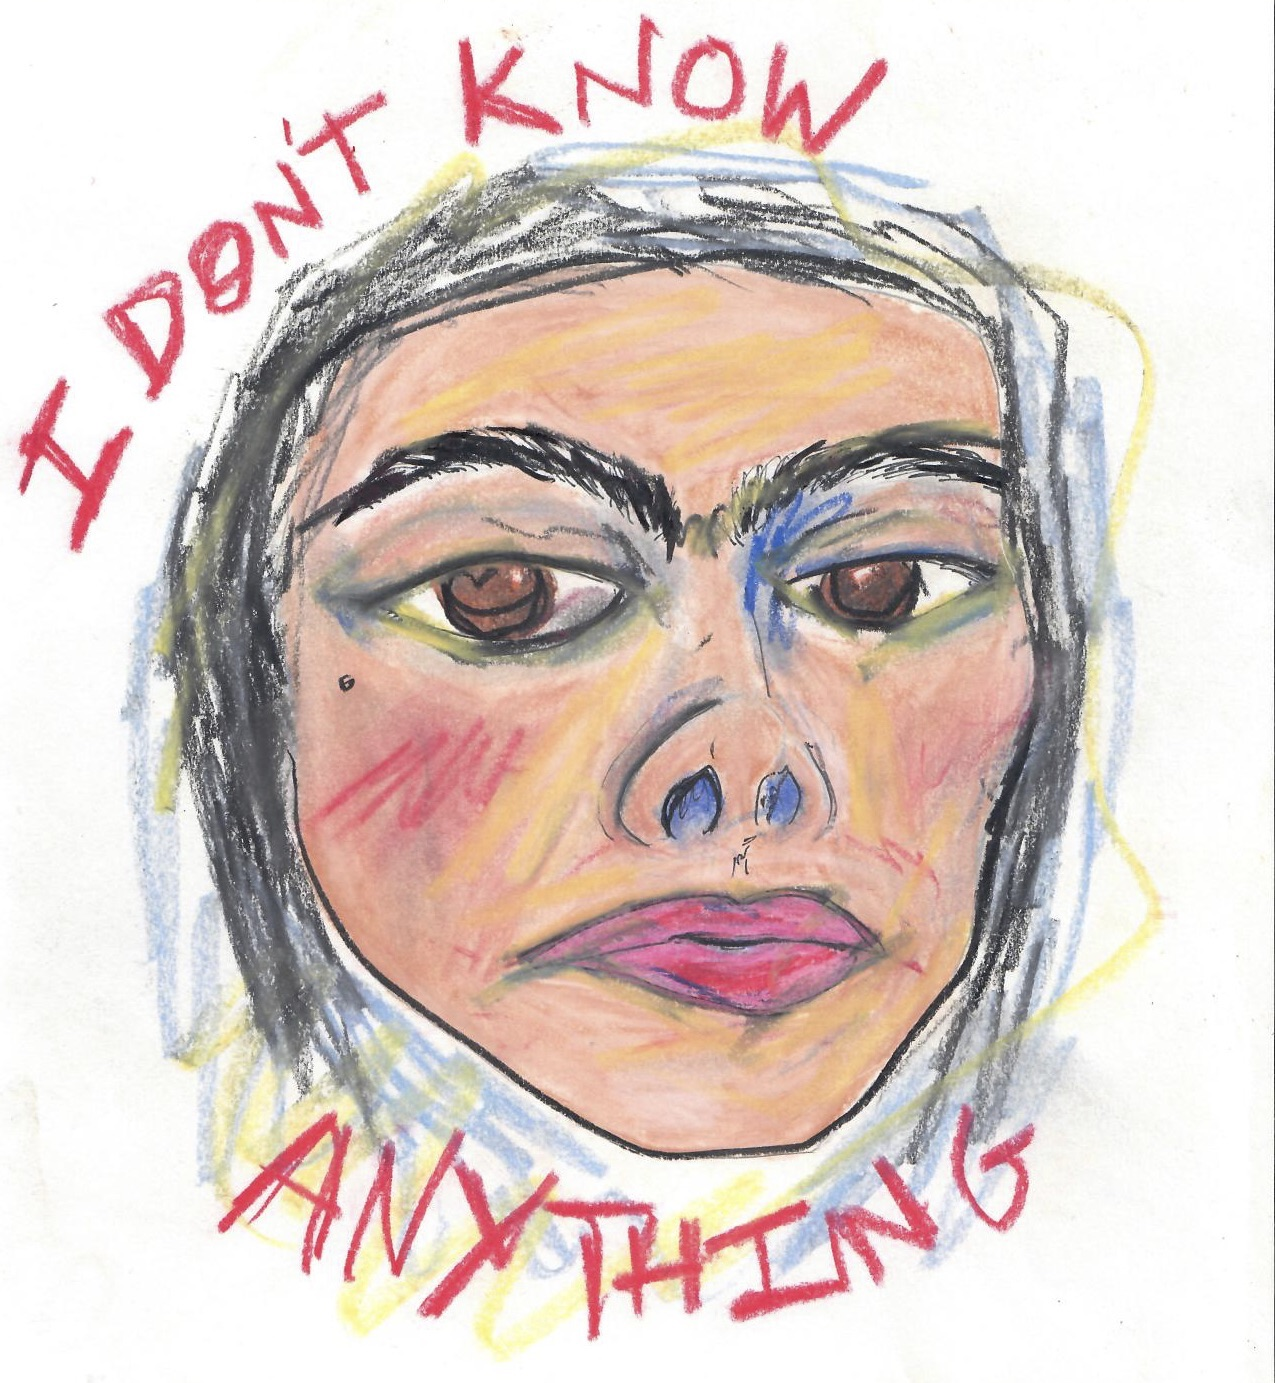 I Don't Know Anything - sticker, 2018